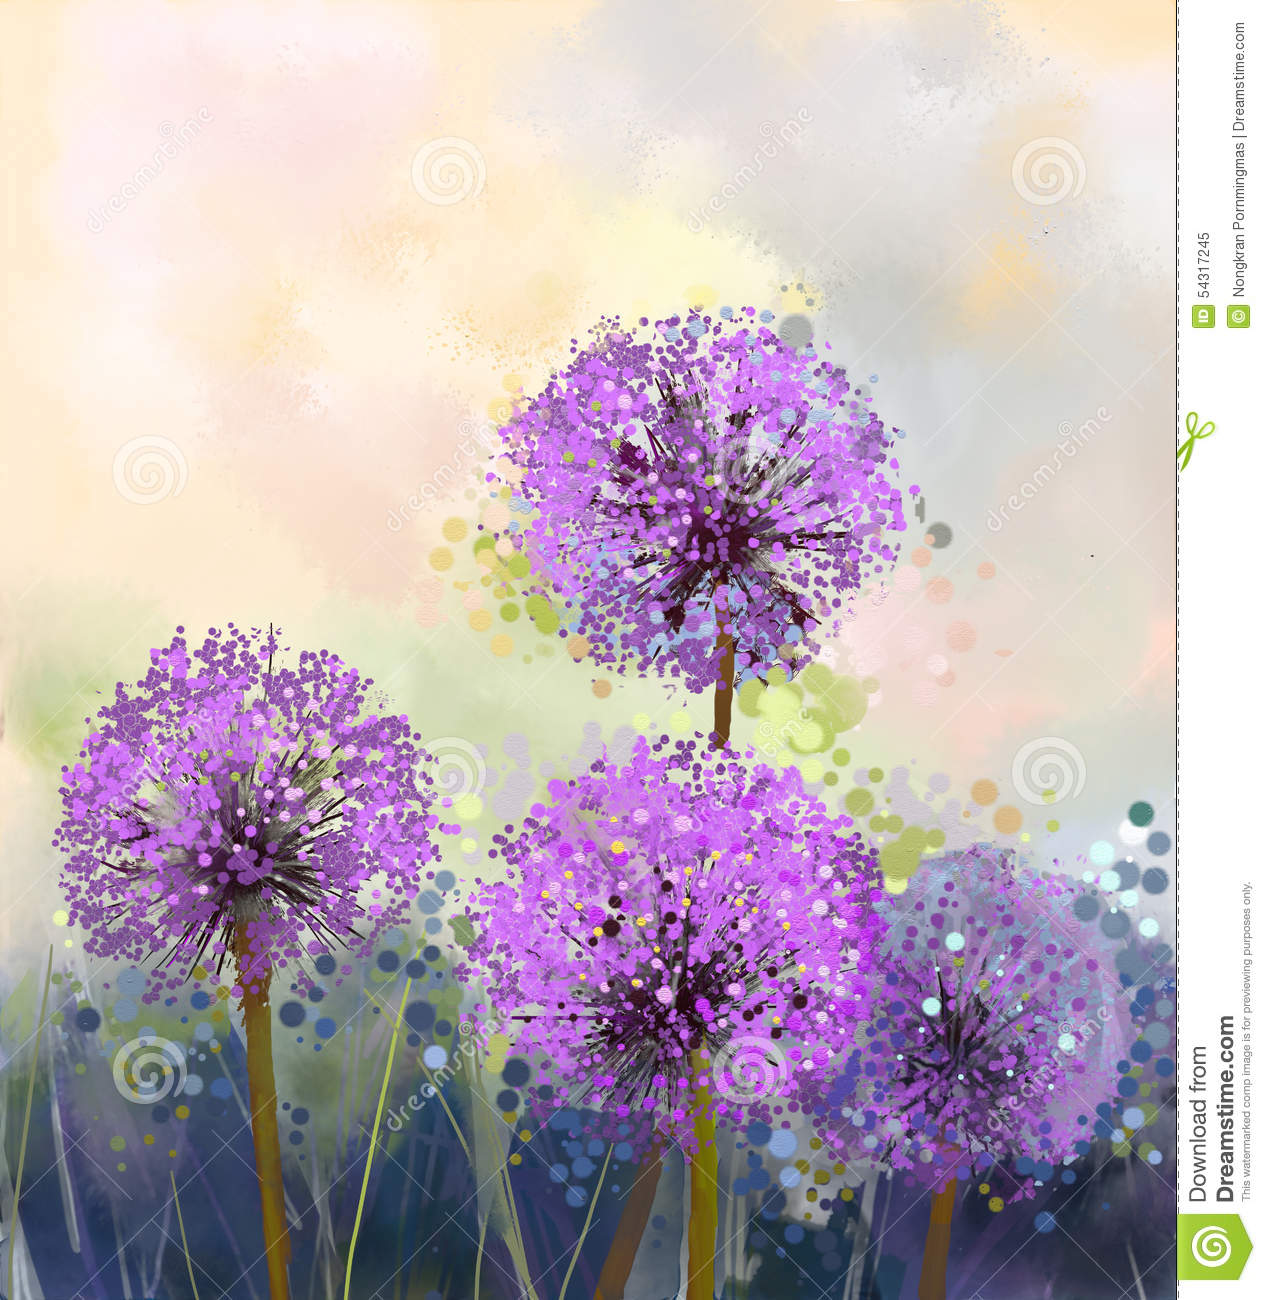 Purple Flower Oil Painting Abstract Wall Art Picture: Oil Painting. Purple Onion Flower Stock Illustration